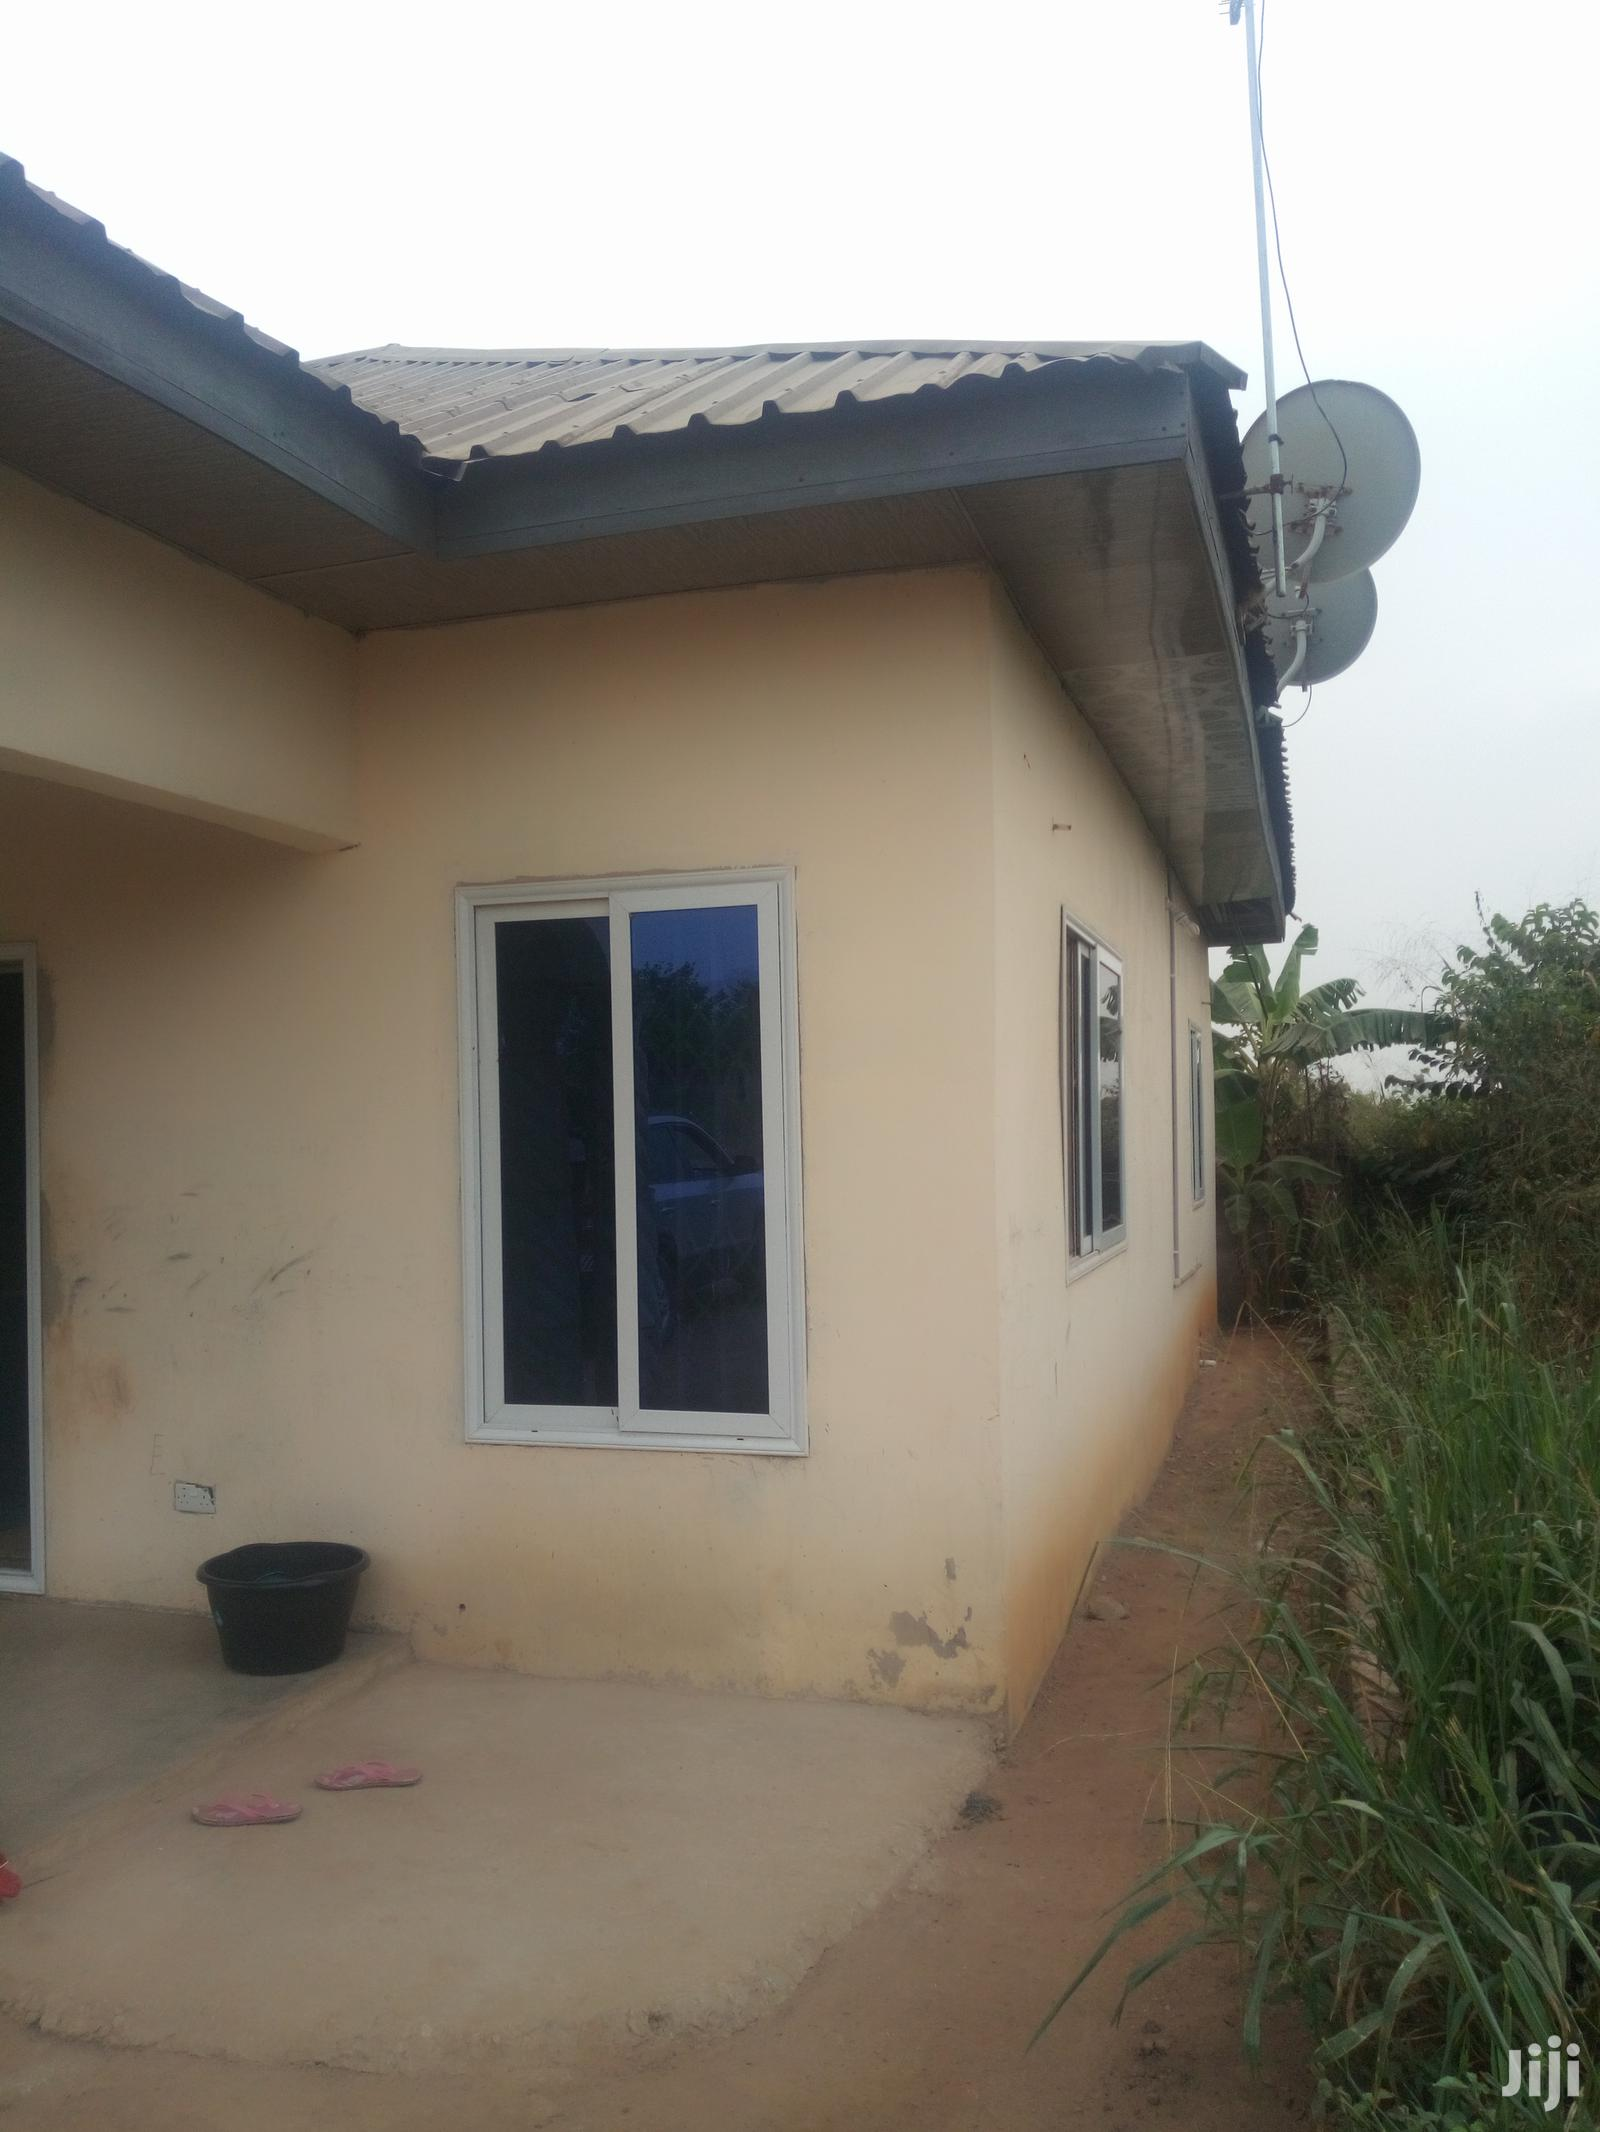 Registered 3brm House At Kasoa Buduburam | Houses & Apartments For Sale for sale in Gomoa West, Central Region, Ghana